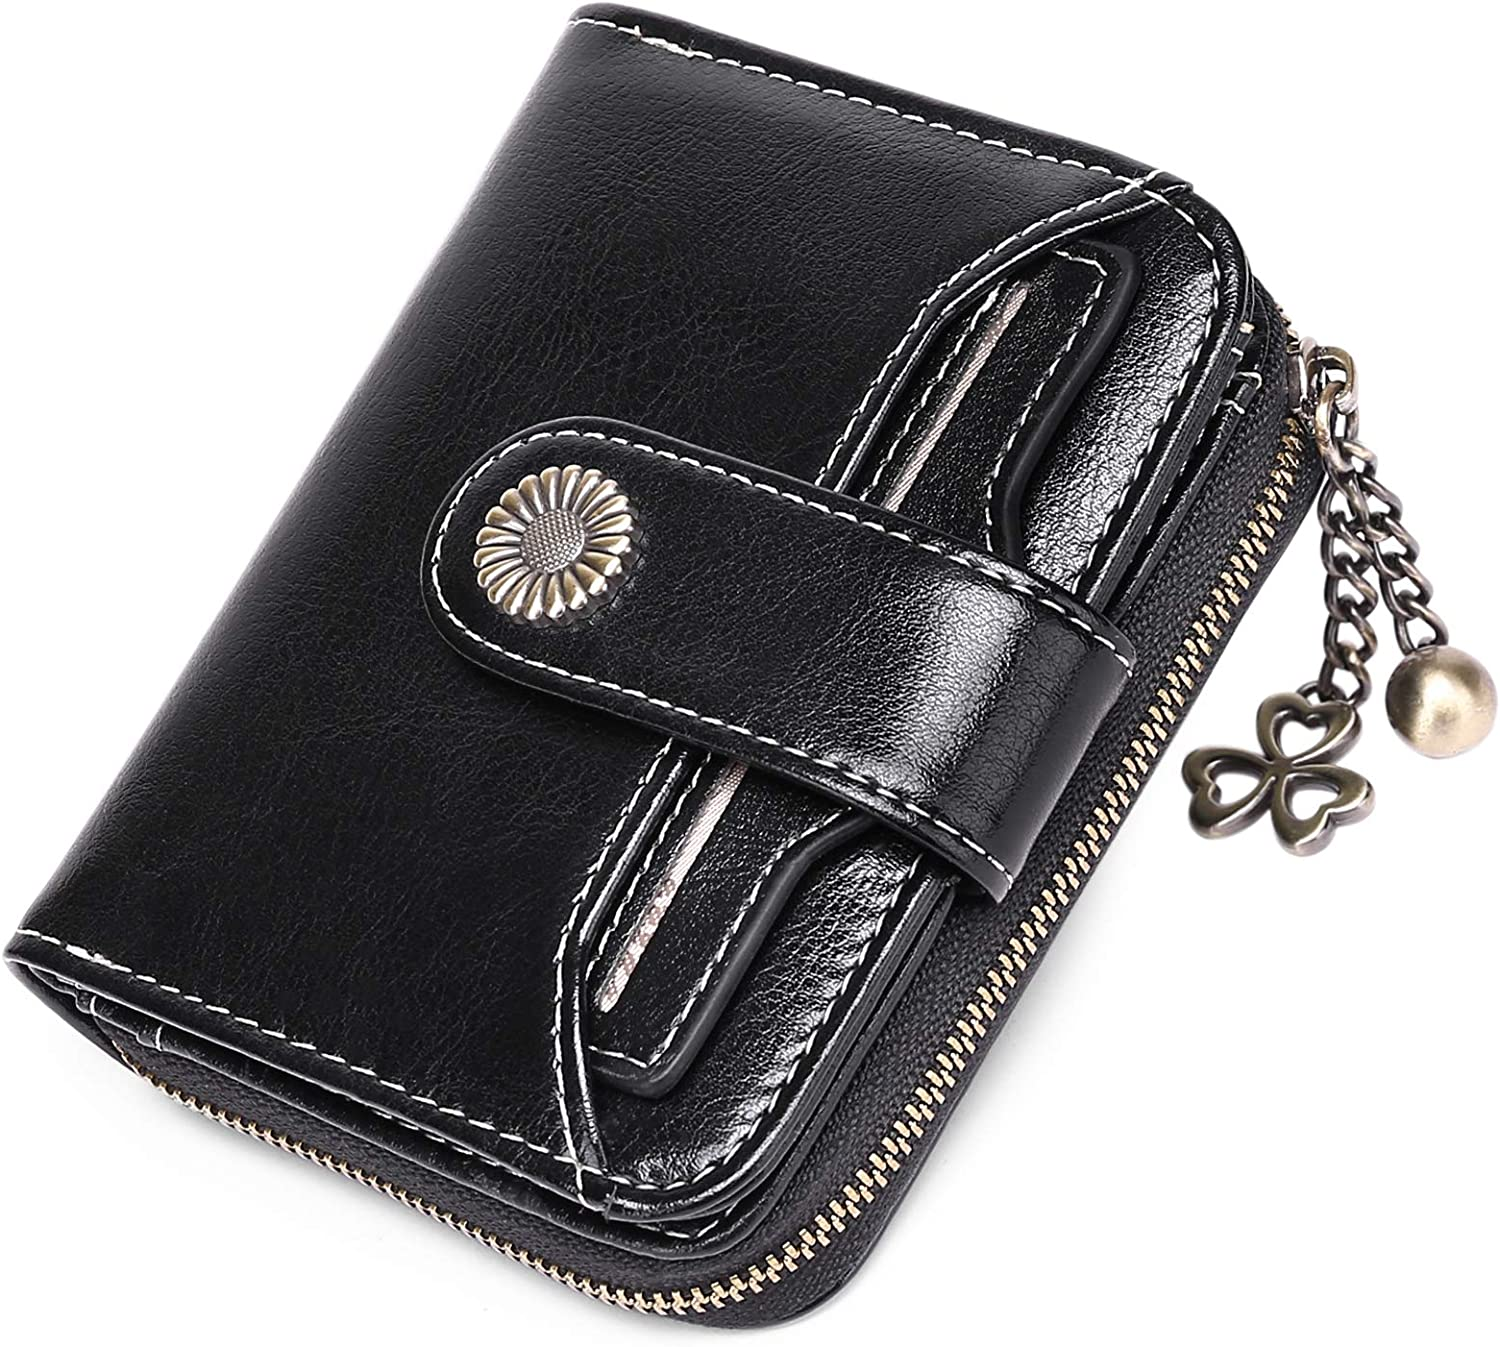 FALAN MULE Small Wallets for Women, RFID Blocking Genuine Leather Bifold Zippered Pocket Wallet Card Case Purse with ID Window